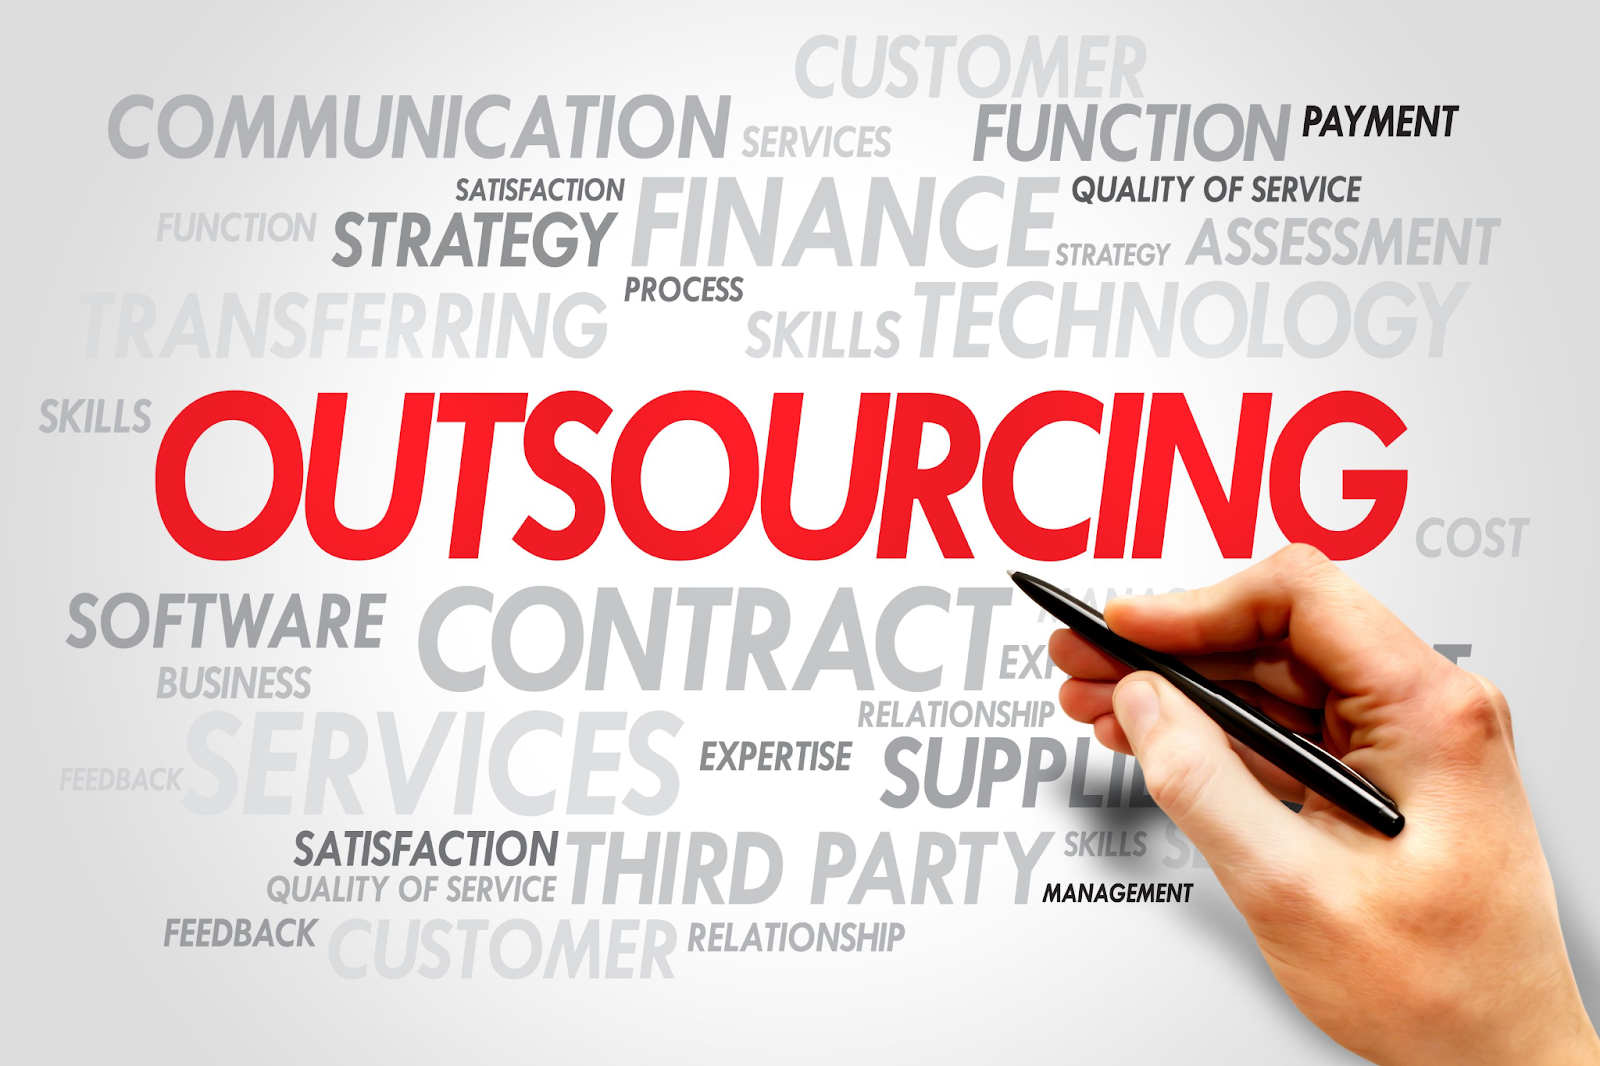 9 ways outsourcing can improve your business performance.